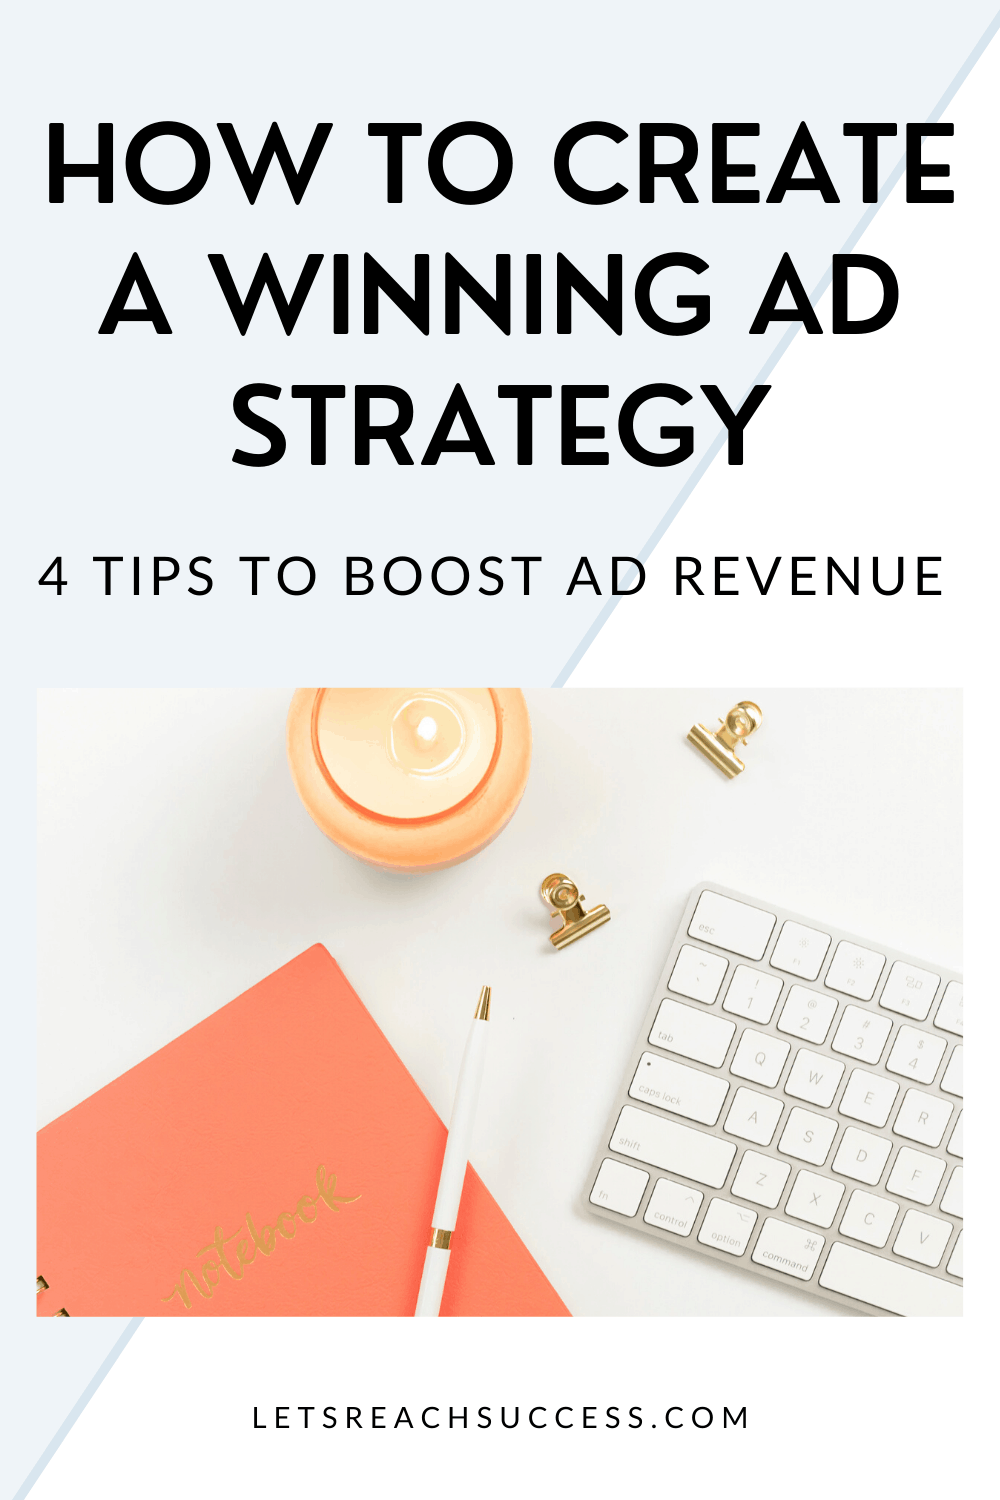 Here are my top 4 suggestions to implement if you want a winning ad strategy: #adrevenueblog #blogtips #makemoneyblogging #monetizeyourblog #makemoneyadvertising #incomestreams #blogincome